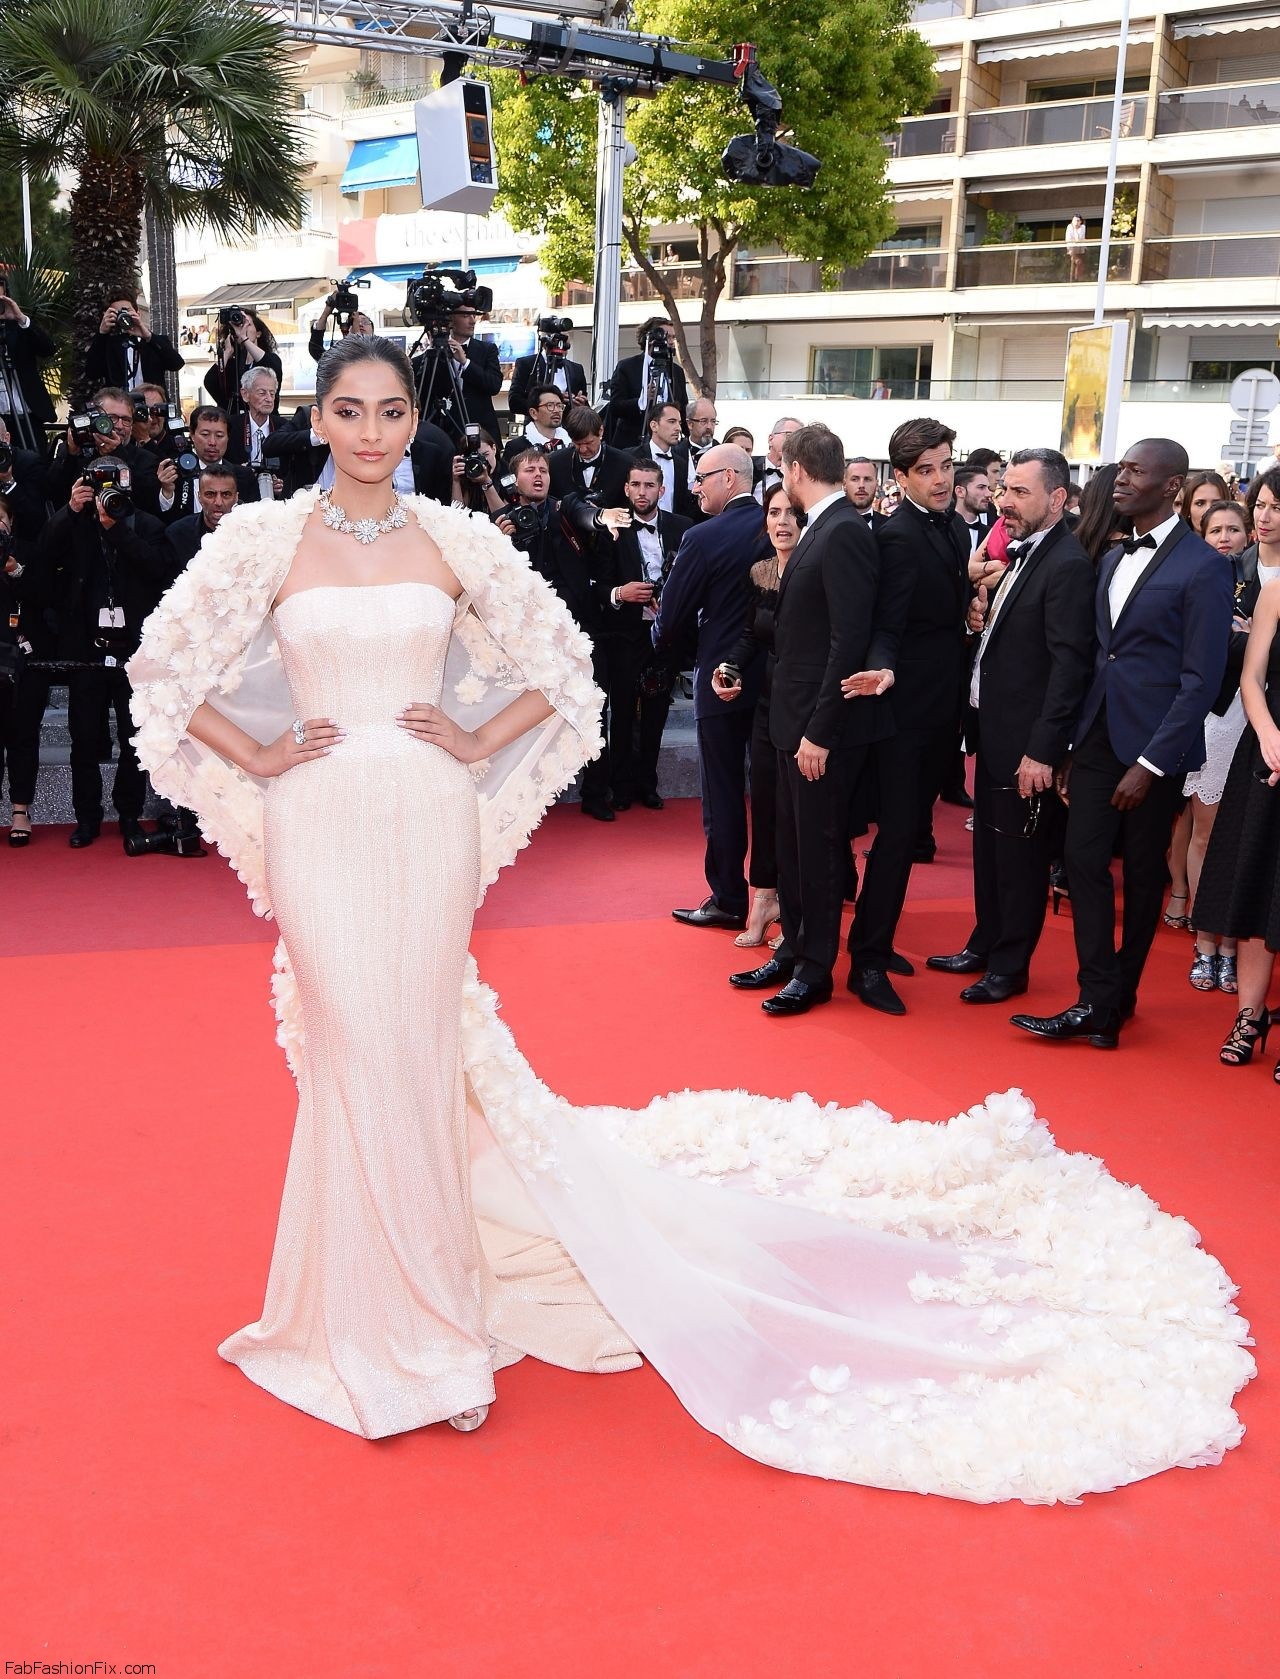 sonam-kapoor-the-loving-premiere-at-69th-cannes-film-festival-5-16-2016-8